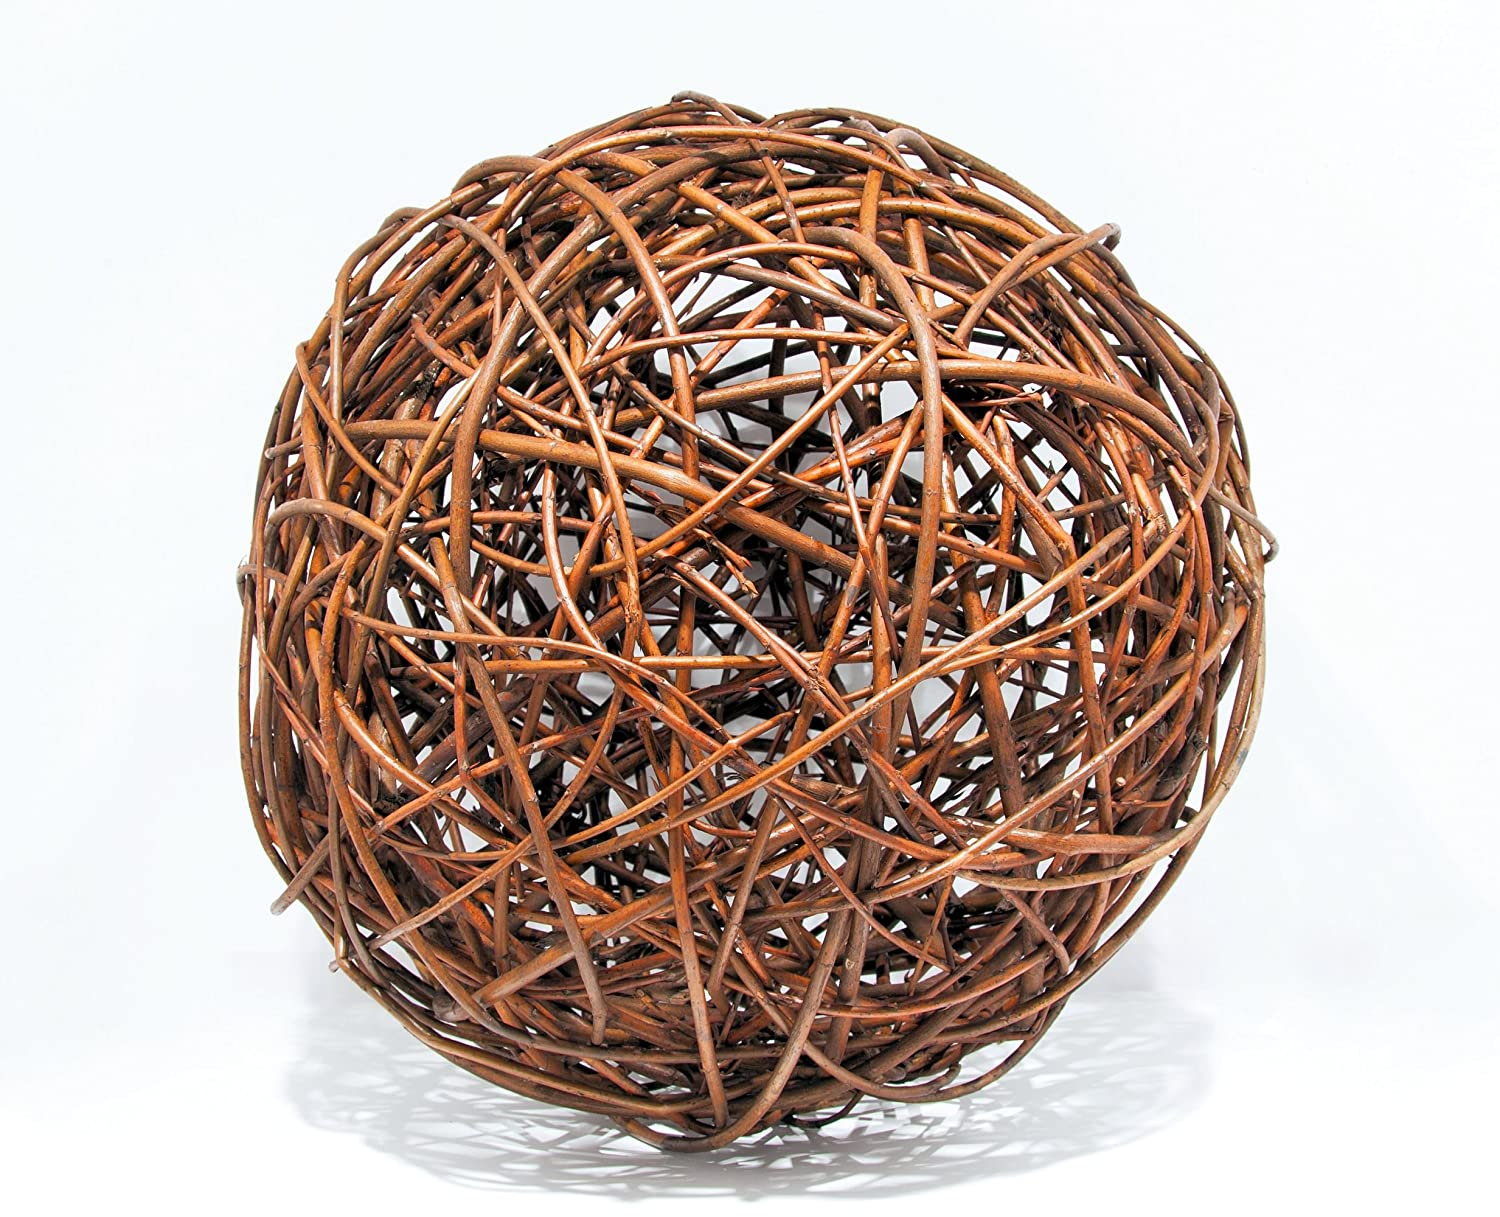 Floranica Willow ball, willow decoration ball, vine ball, garden decoration in 5 different sizes, Diameter:20cm Pemicont